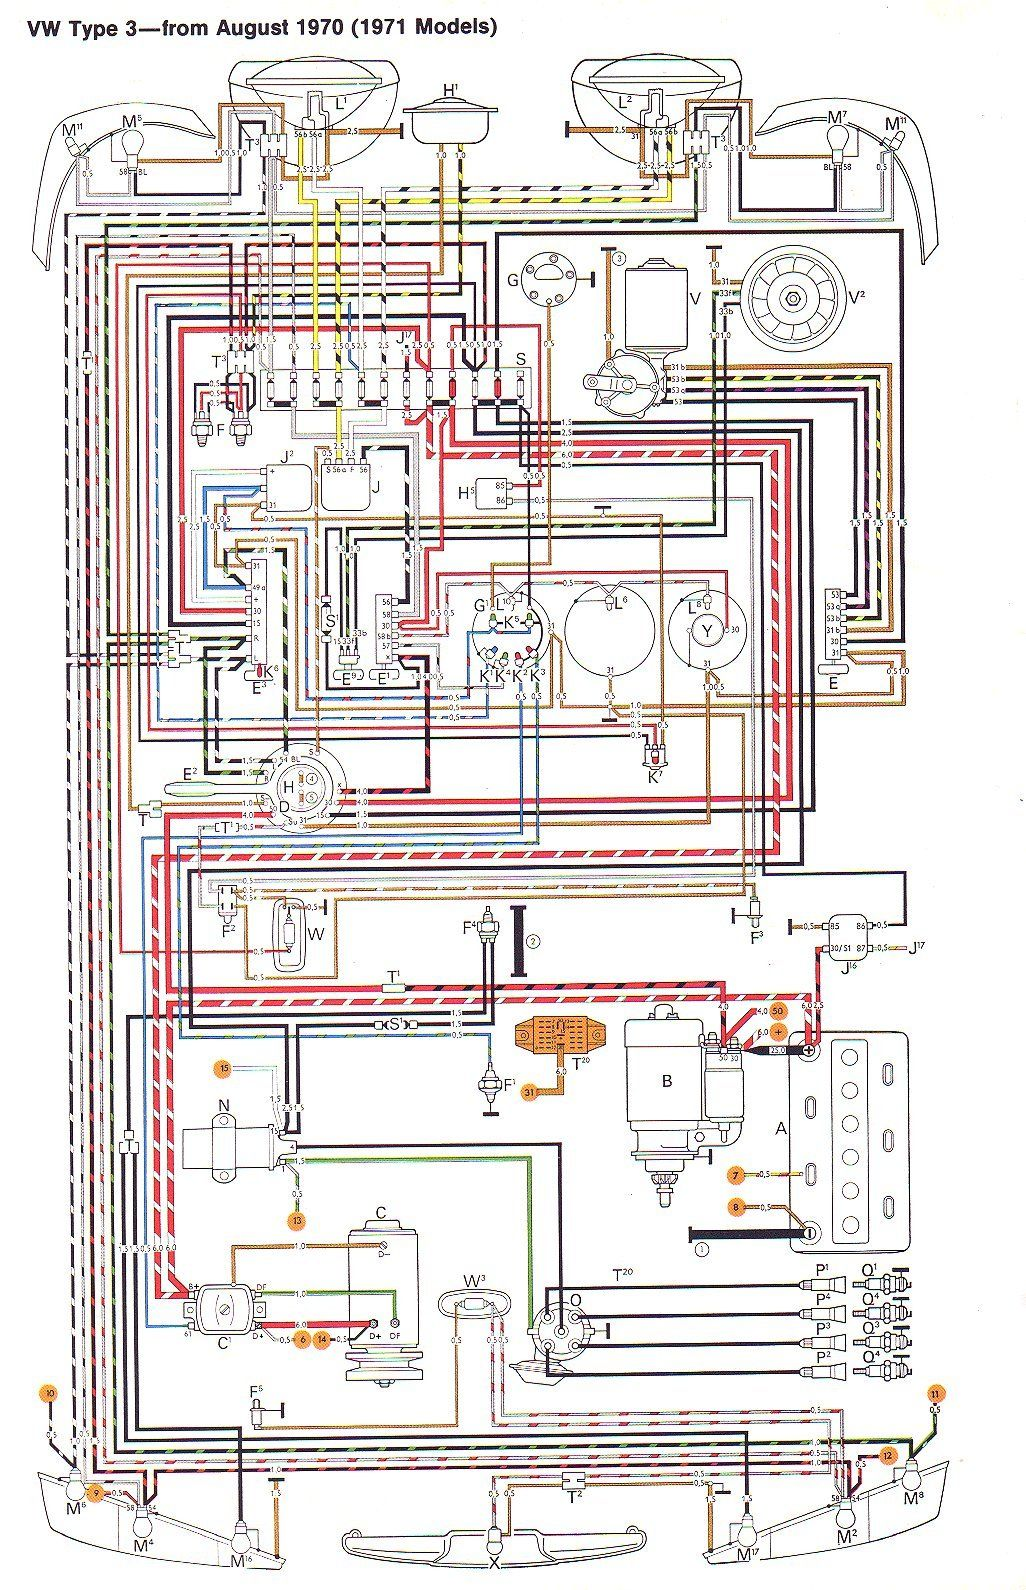 e0db58370f79a63d02d45f00cf63f44a 71 vw t3 wiring diagram car projects pinterest volkswagen 1970 vw beetle electrical wiring diagram at soozxer.org